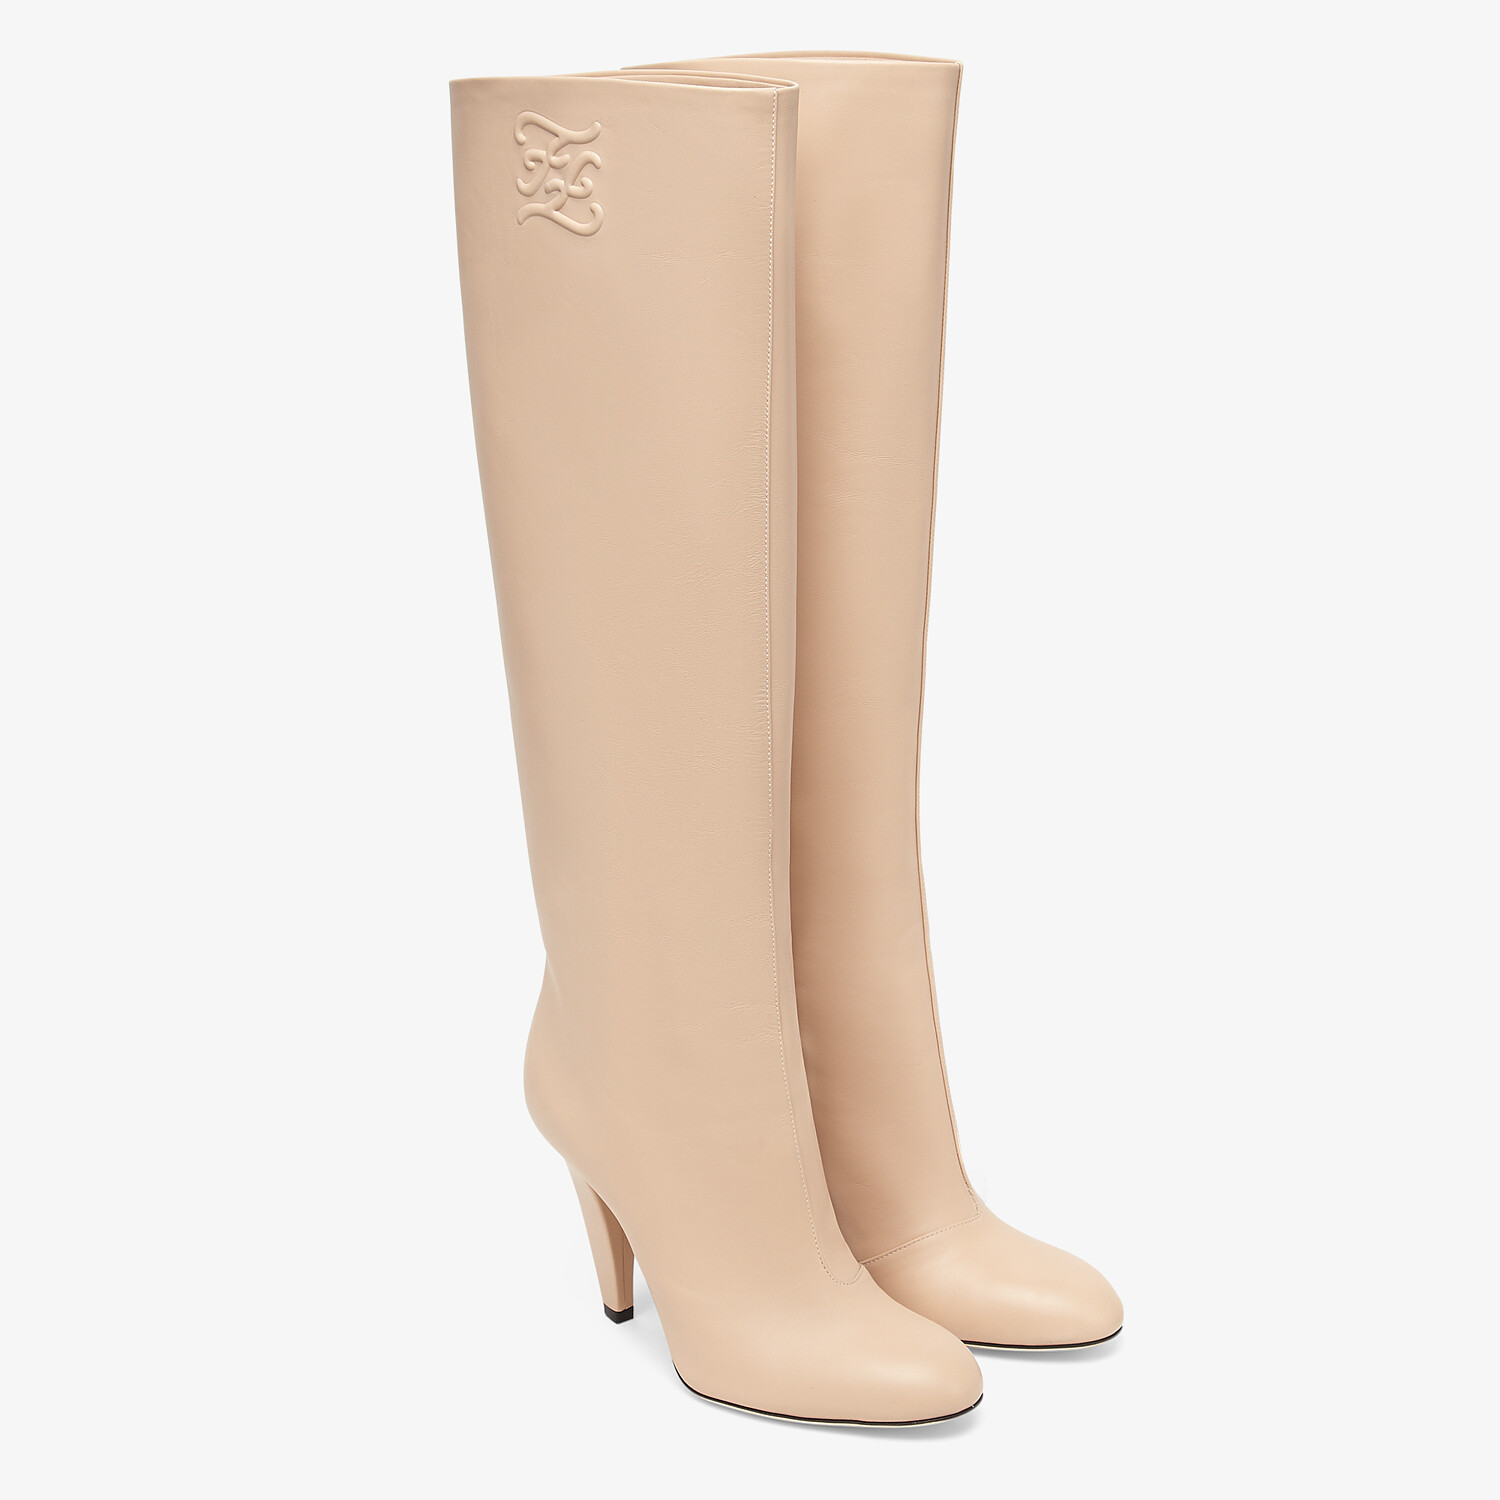 FENDI KARLIGRAPHY - Pink leather, high-heeled boots - view 4 detail